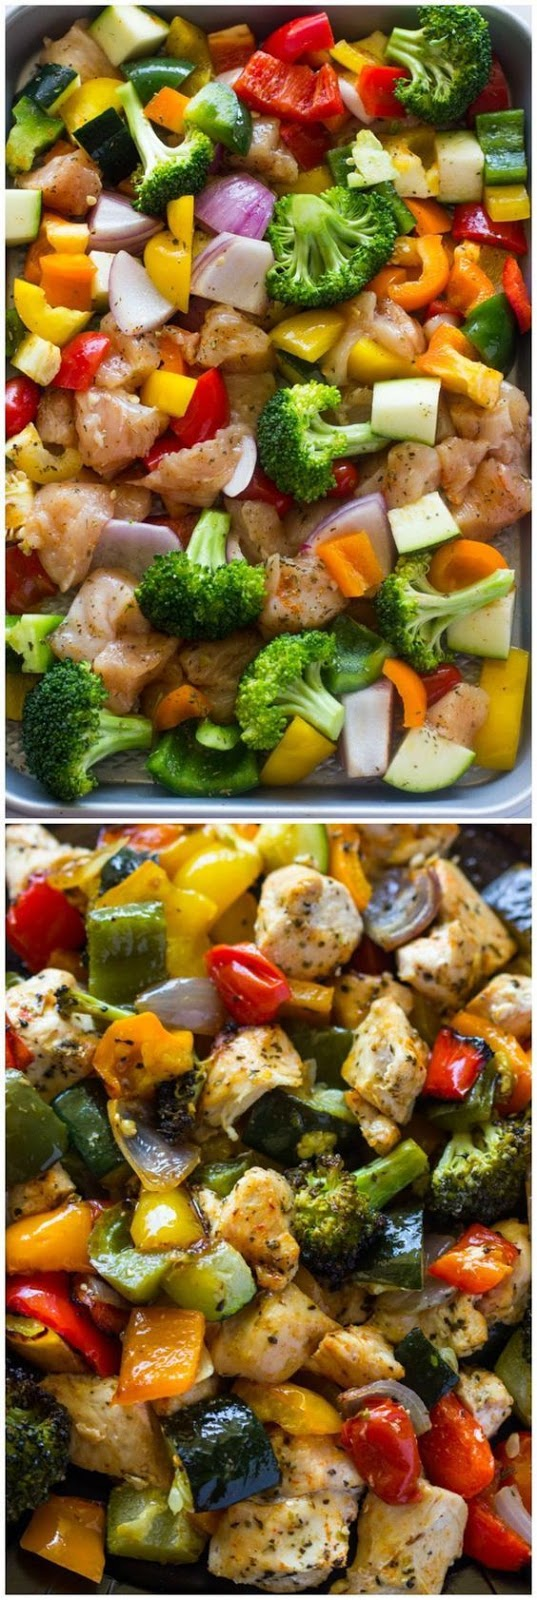 15 Minute Healthy Roasted Chicken and Veggies - Chicken Recipes